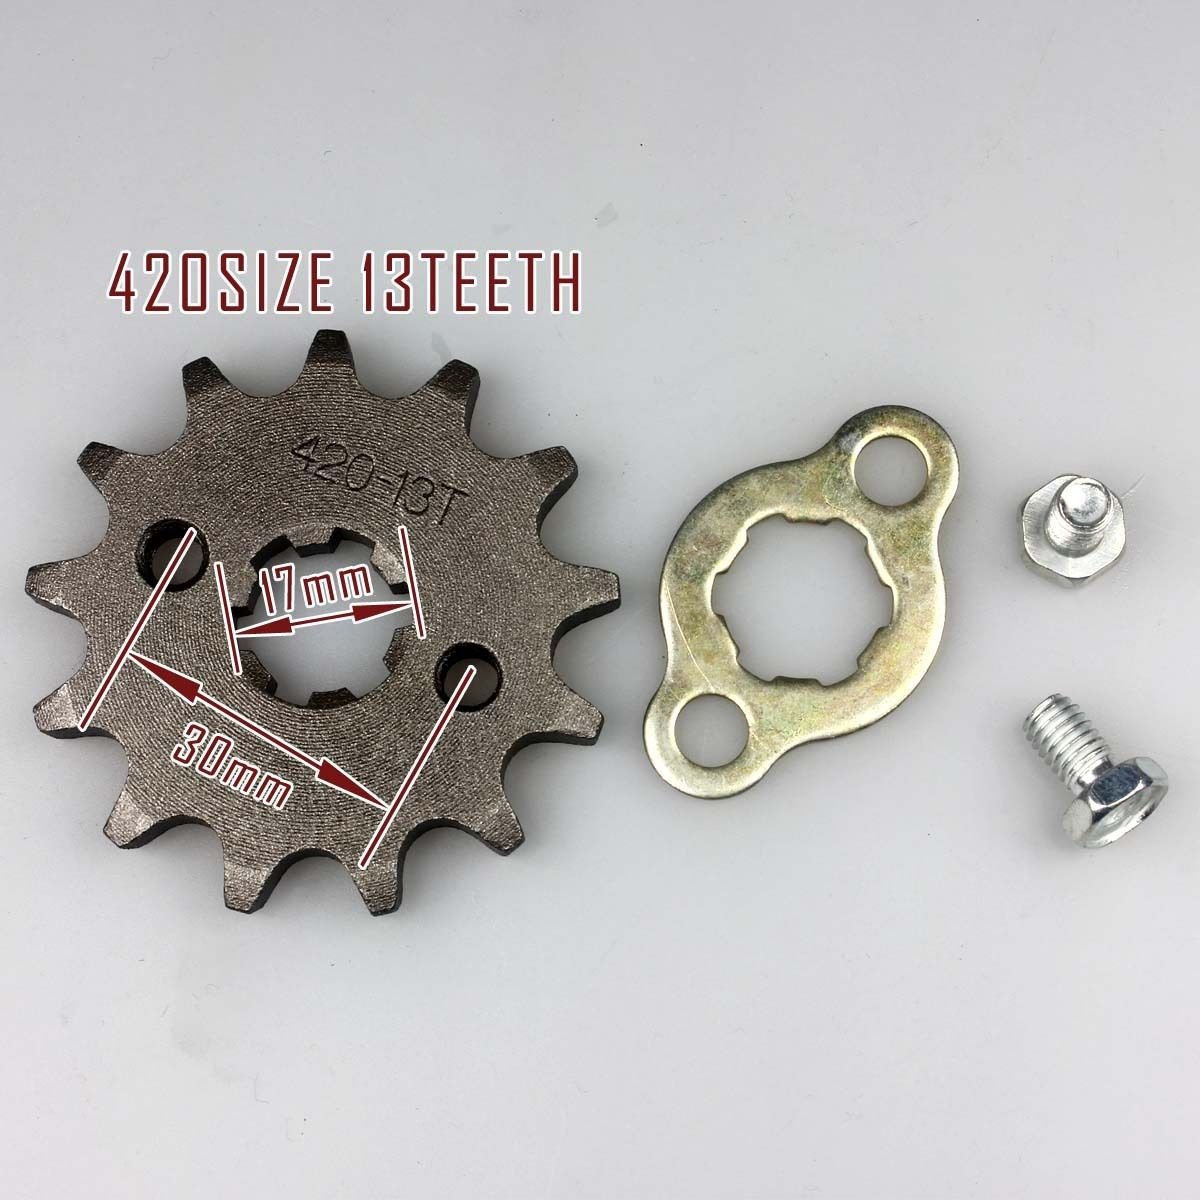 Wingsmoto Sprocket Front 420-13T 17mm Motorcycle ATV Dirtbike